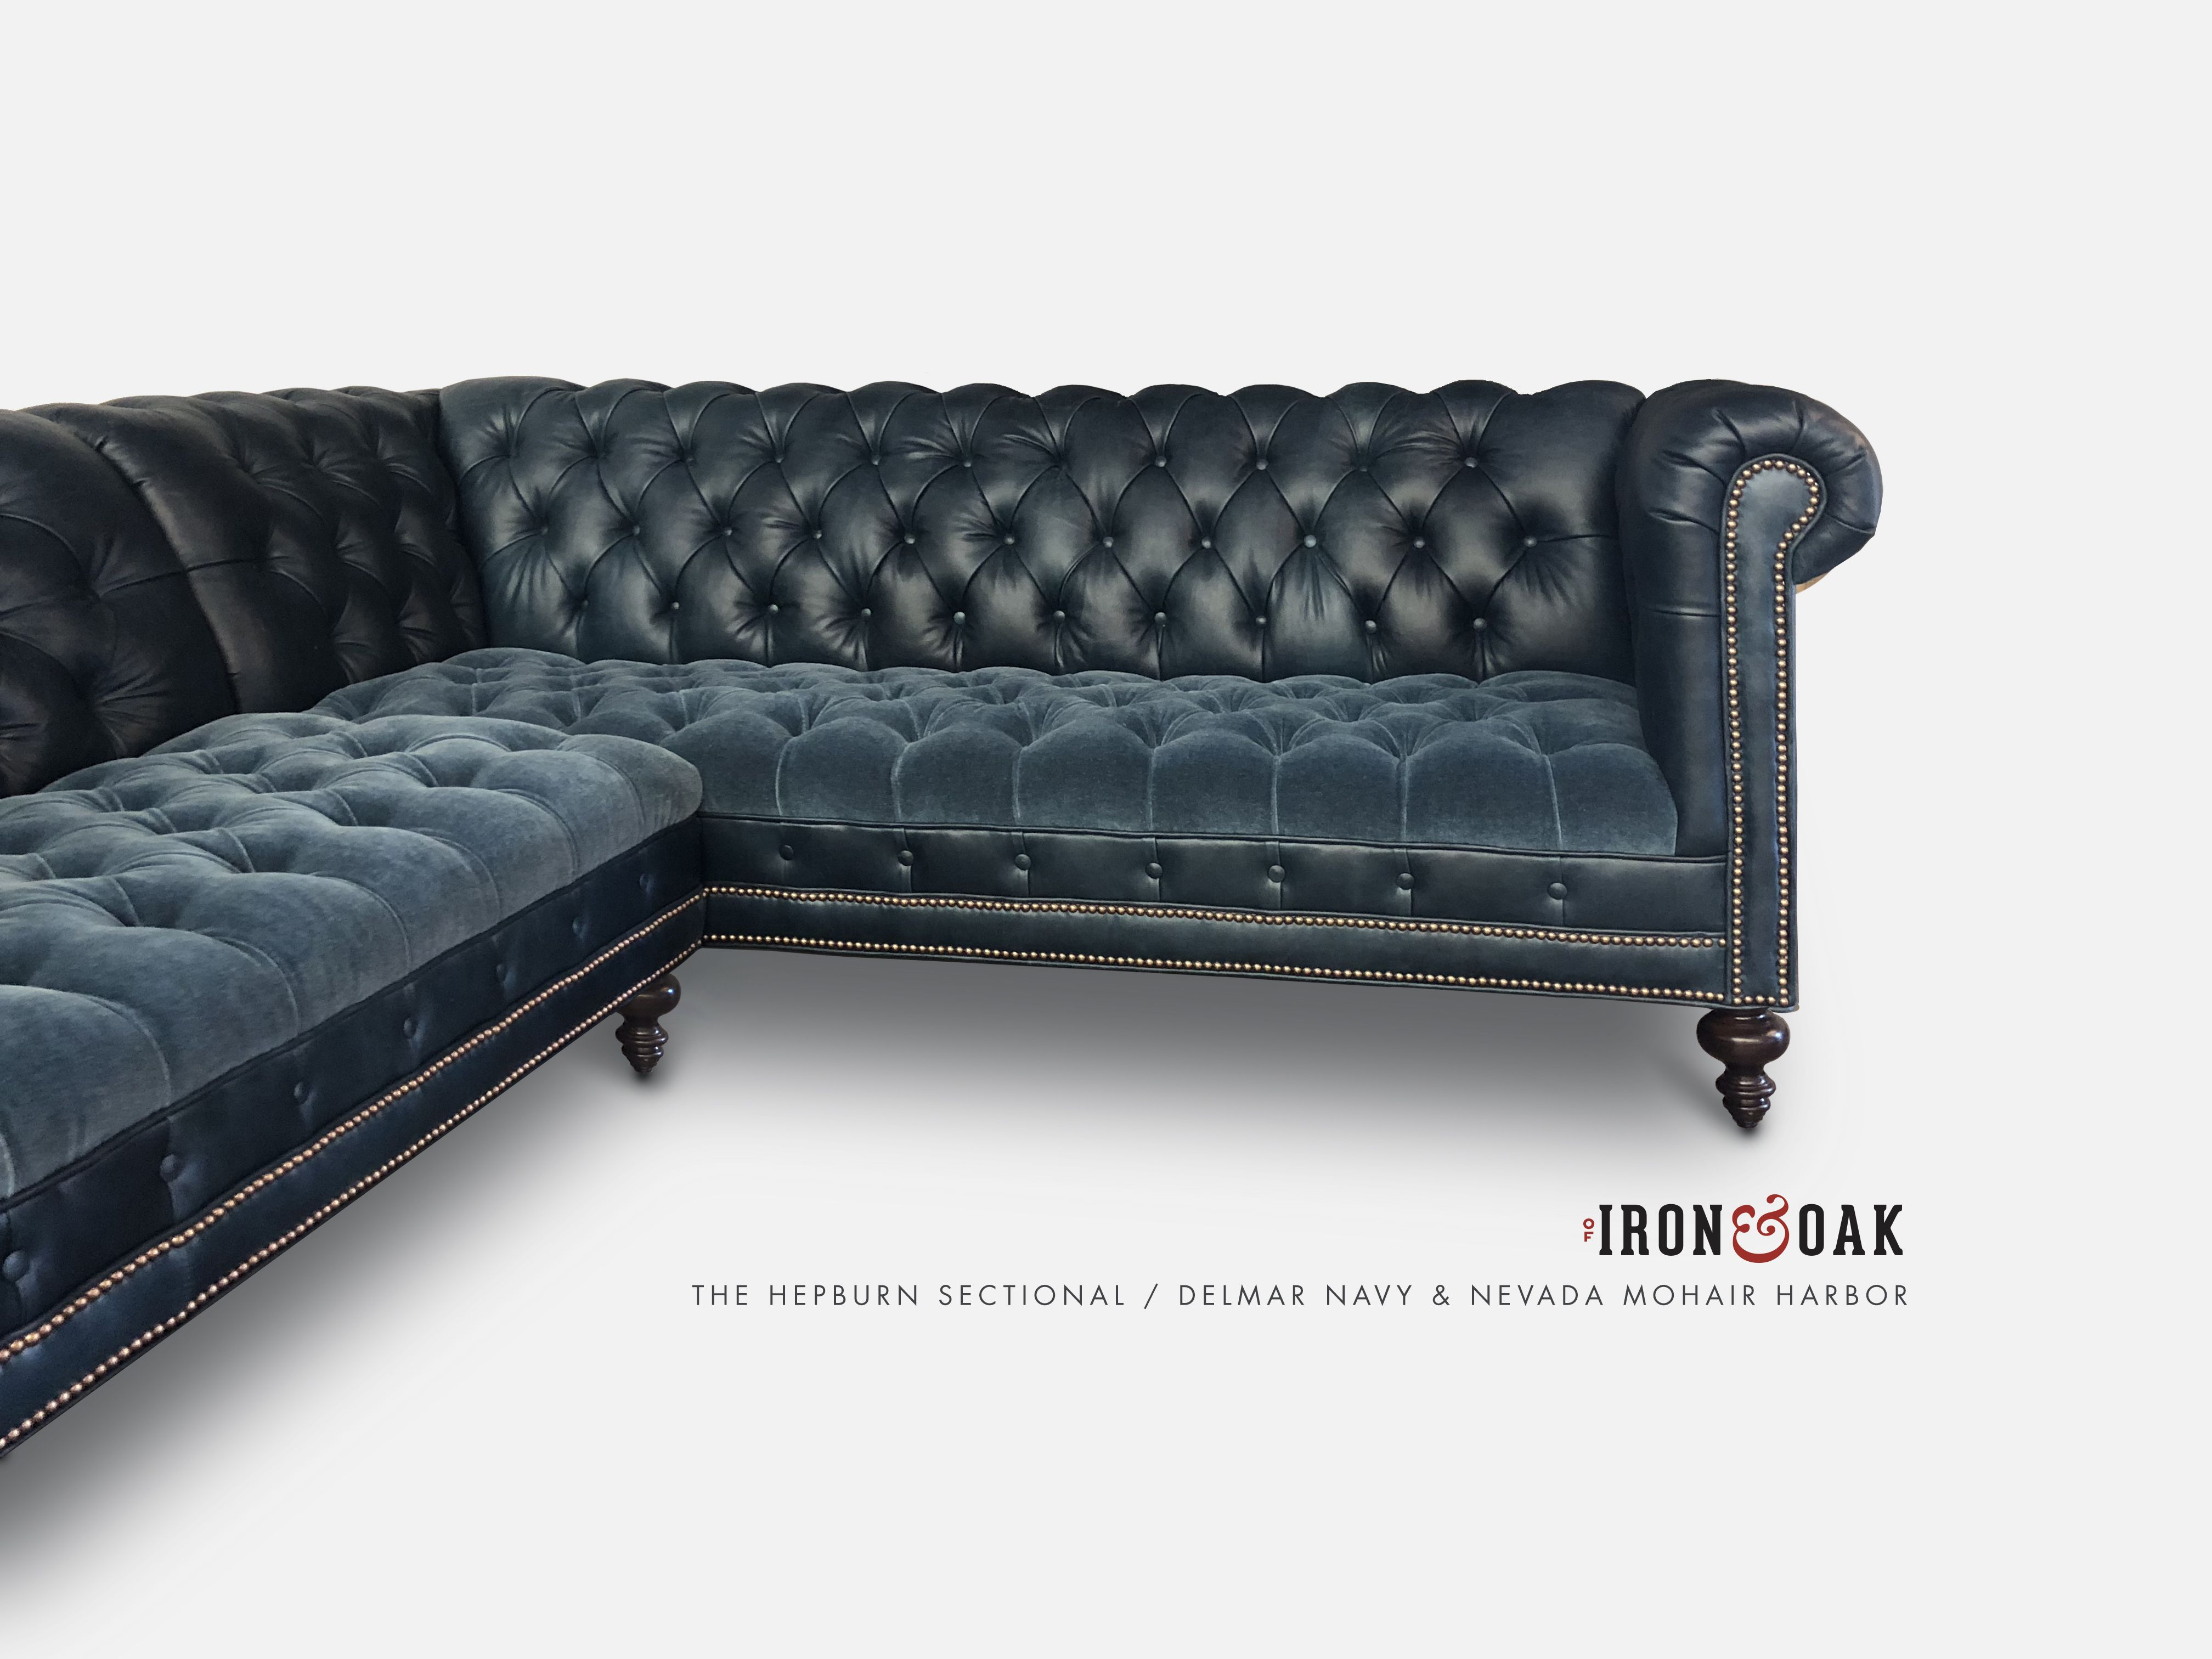 The Hepburn Custom Tufted Seat Chesterfield Sofas More Of Iron Oak Sectional Velvet Sectional Leather Chesterfield Sofa